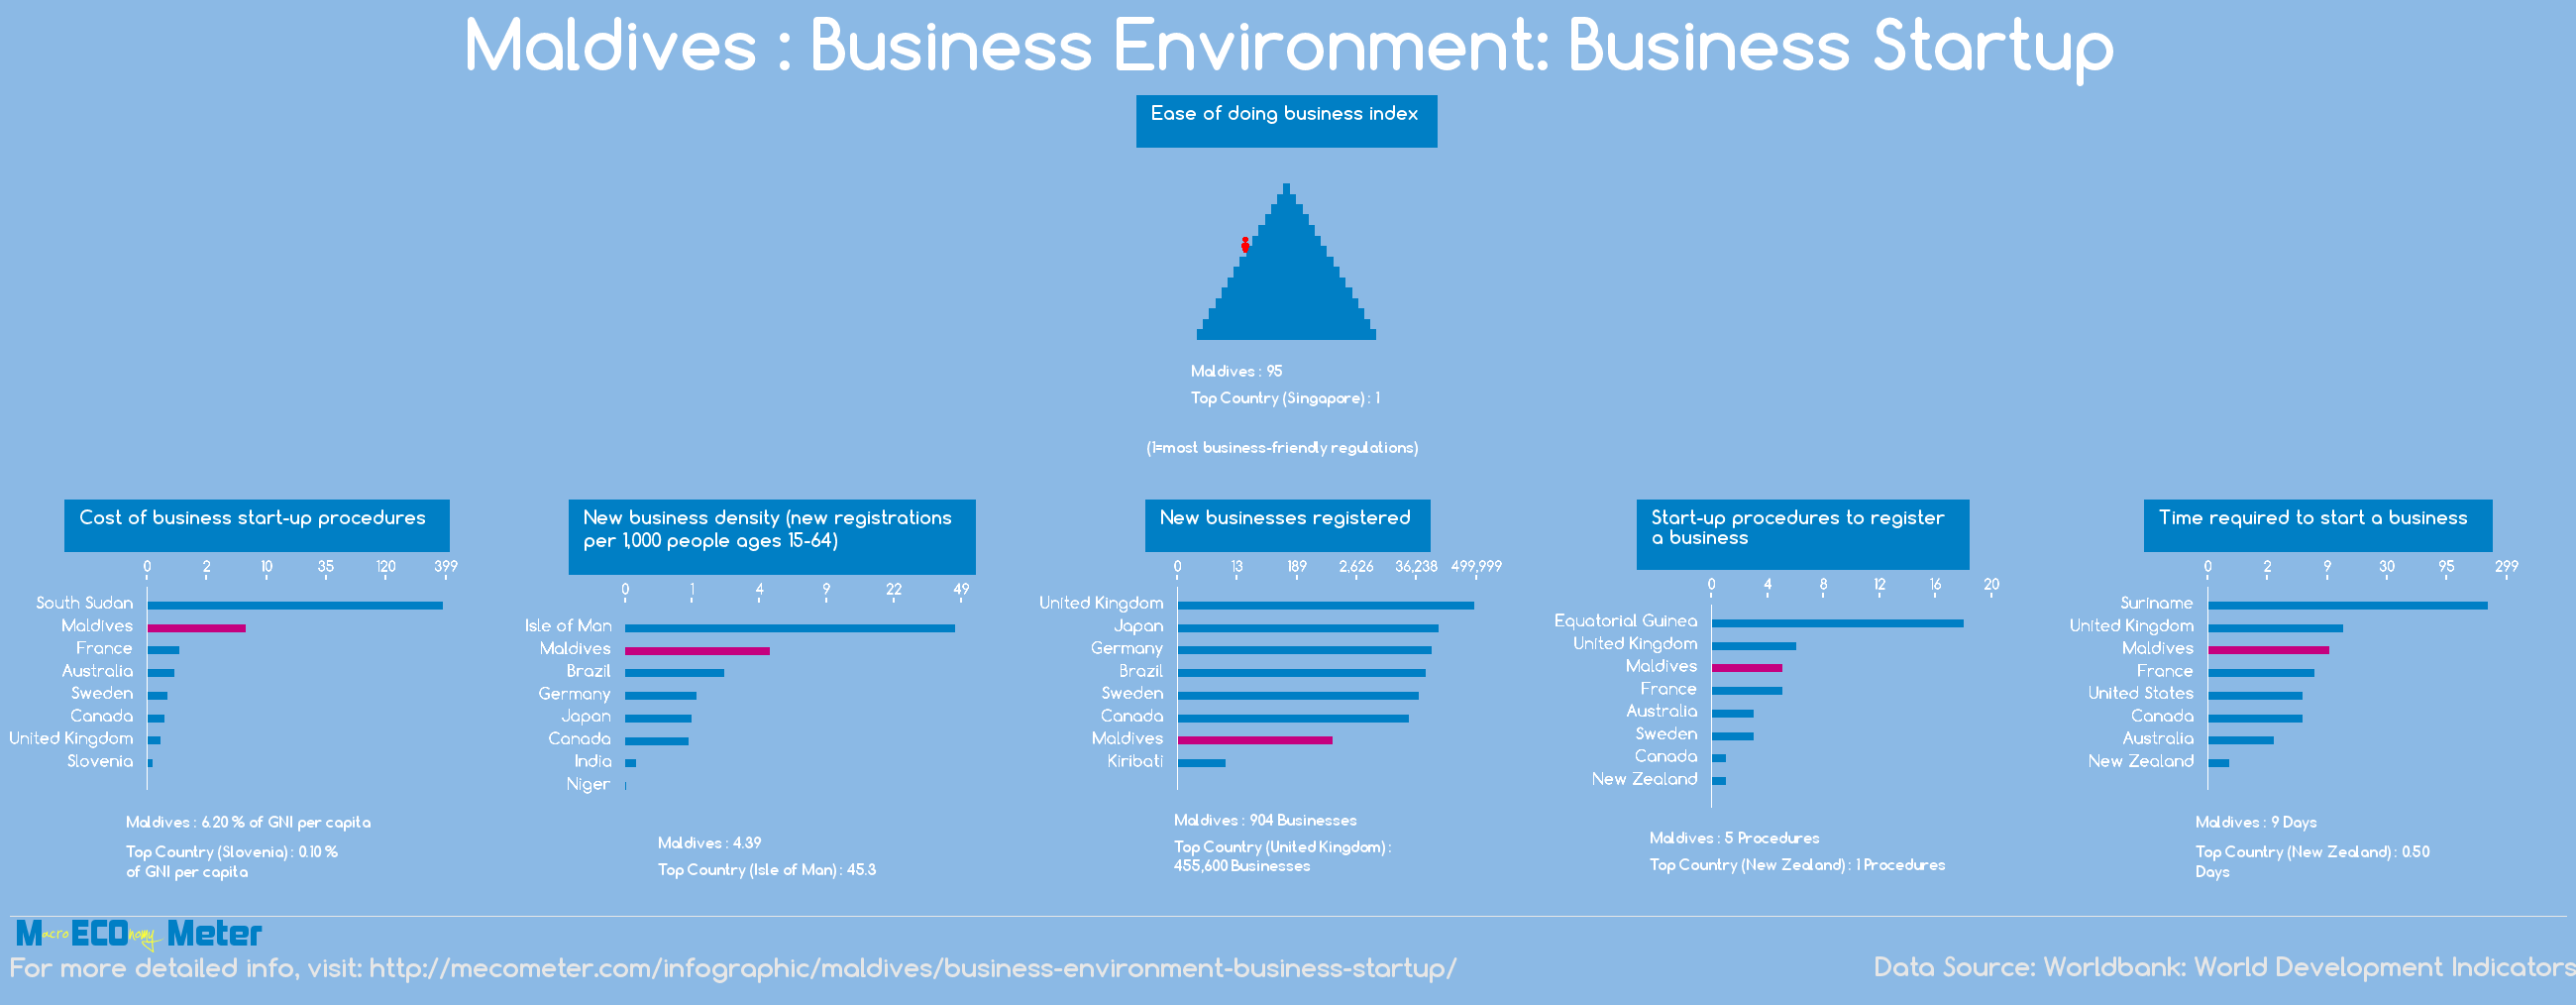 Maldives : Business Environment: Business Startup